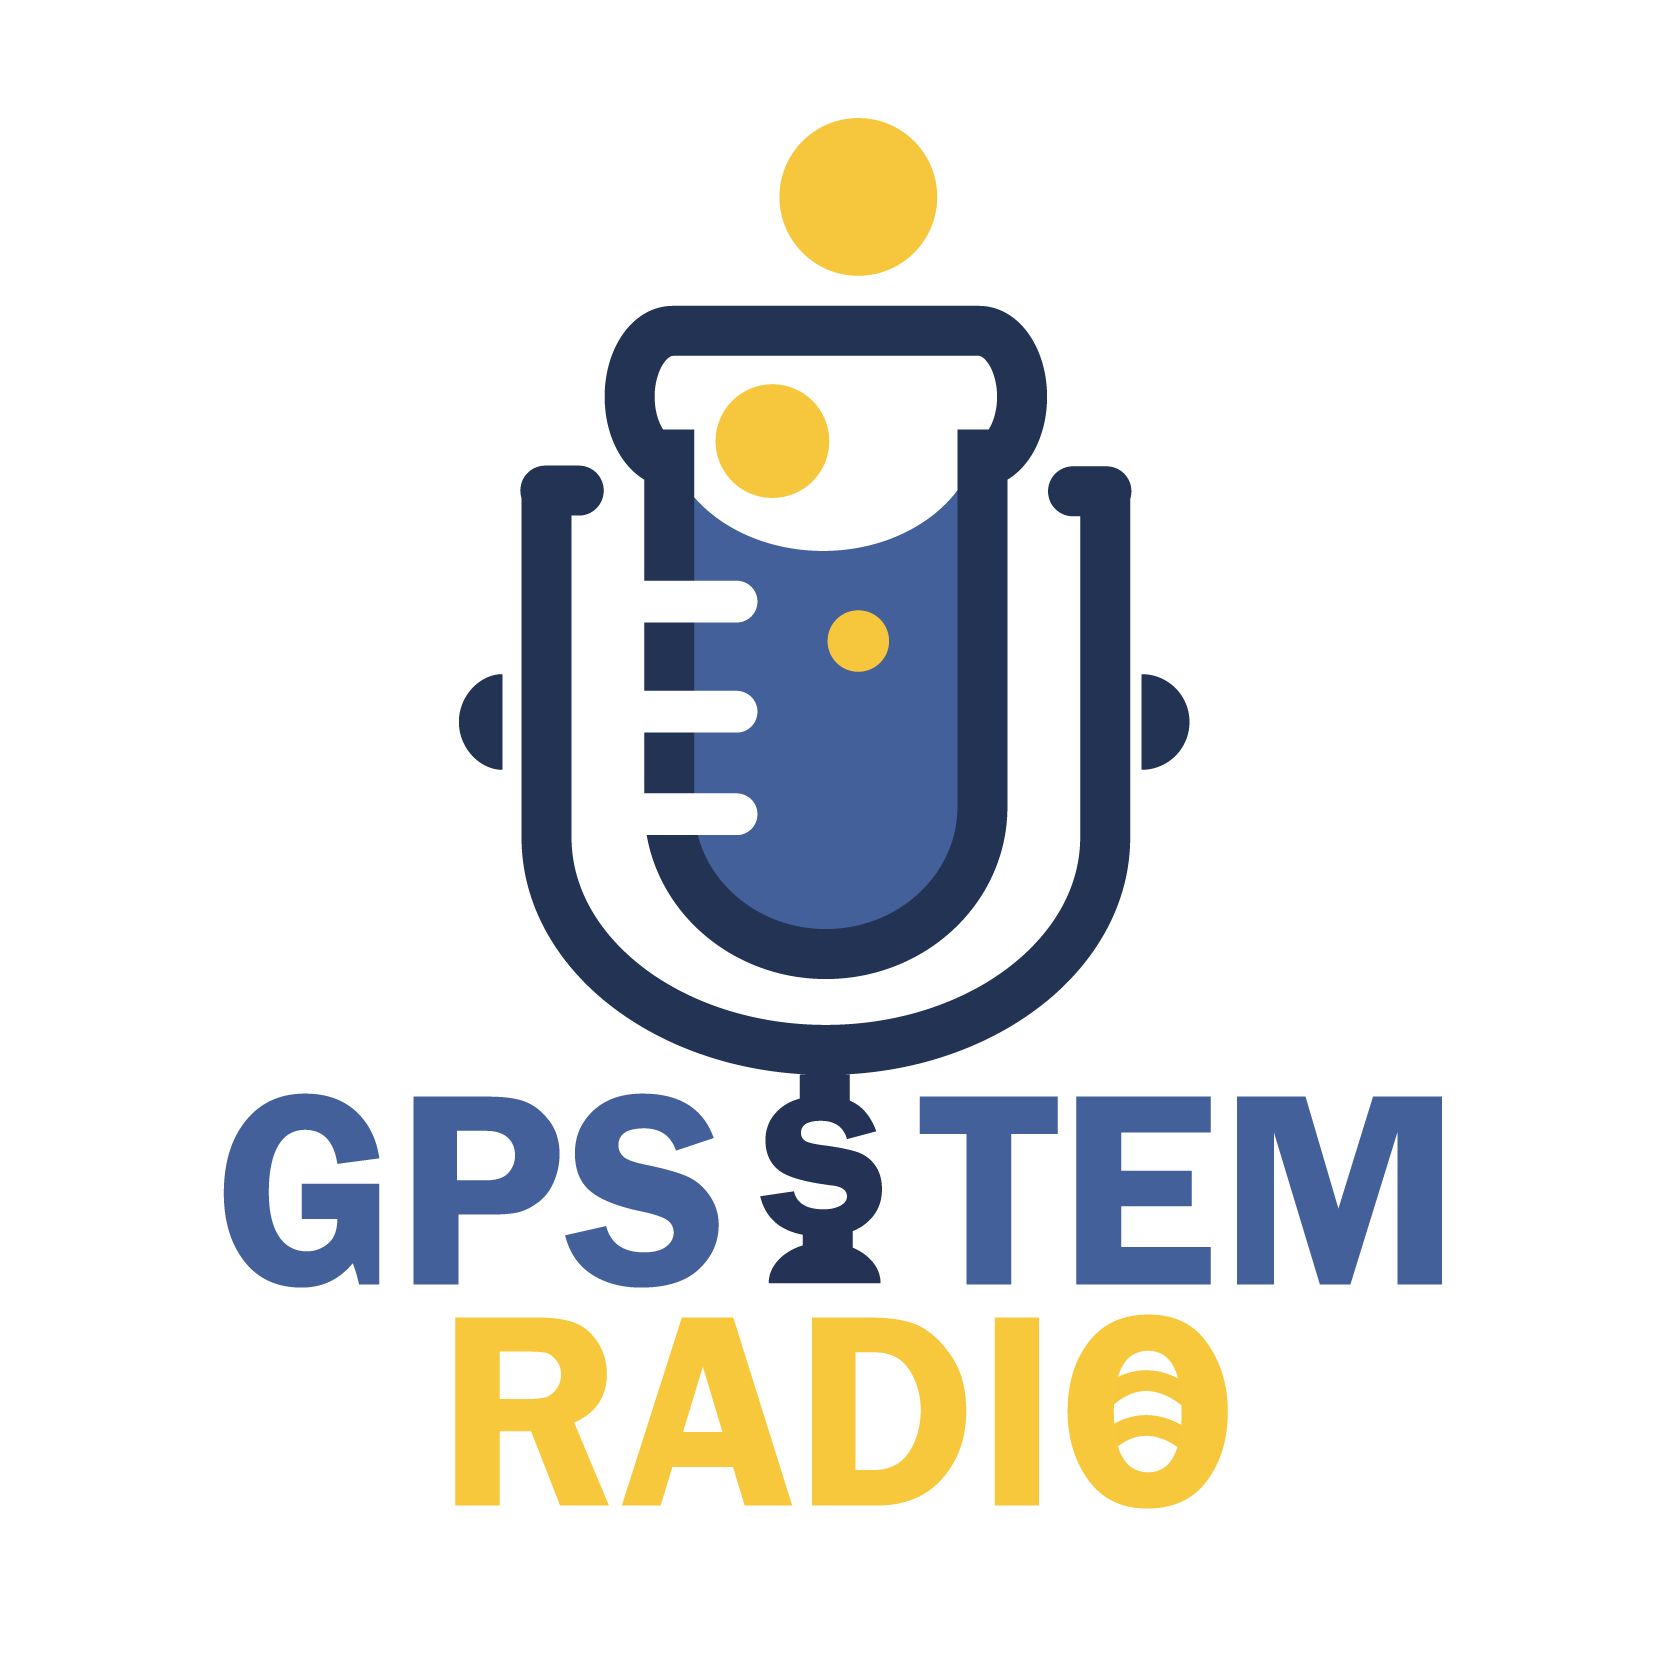 GPS-STEM Radio